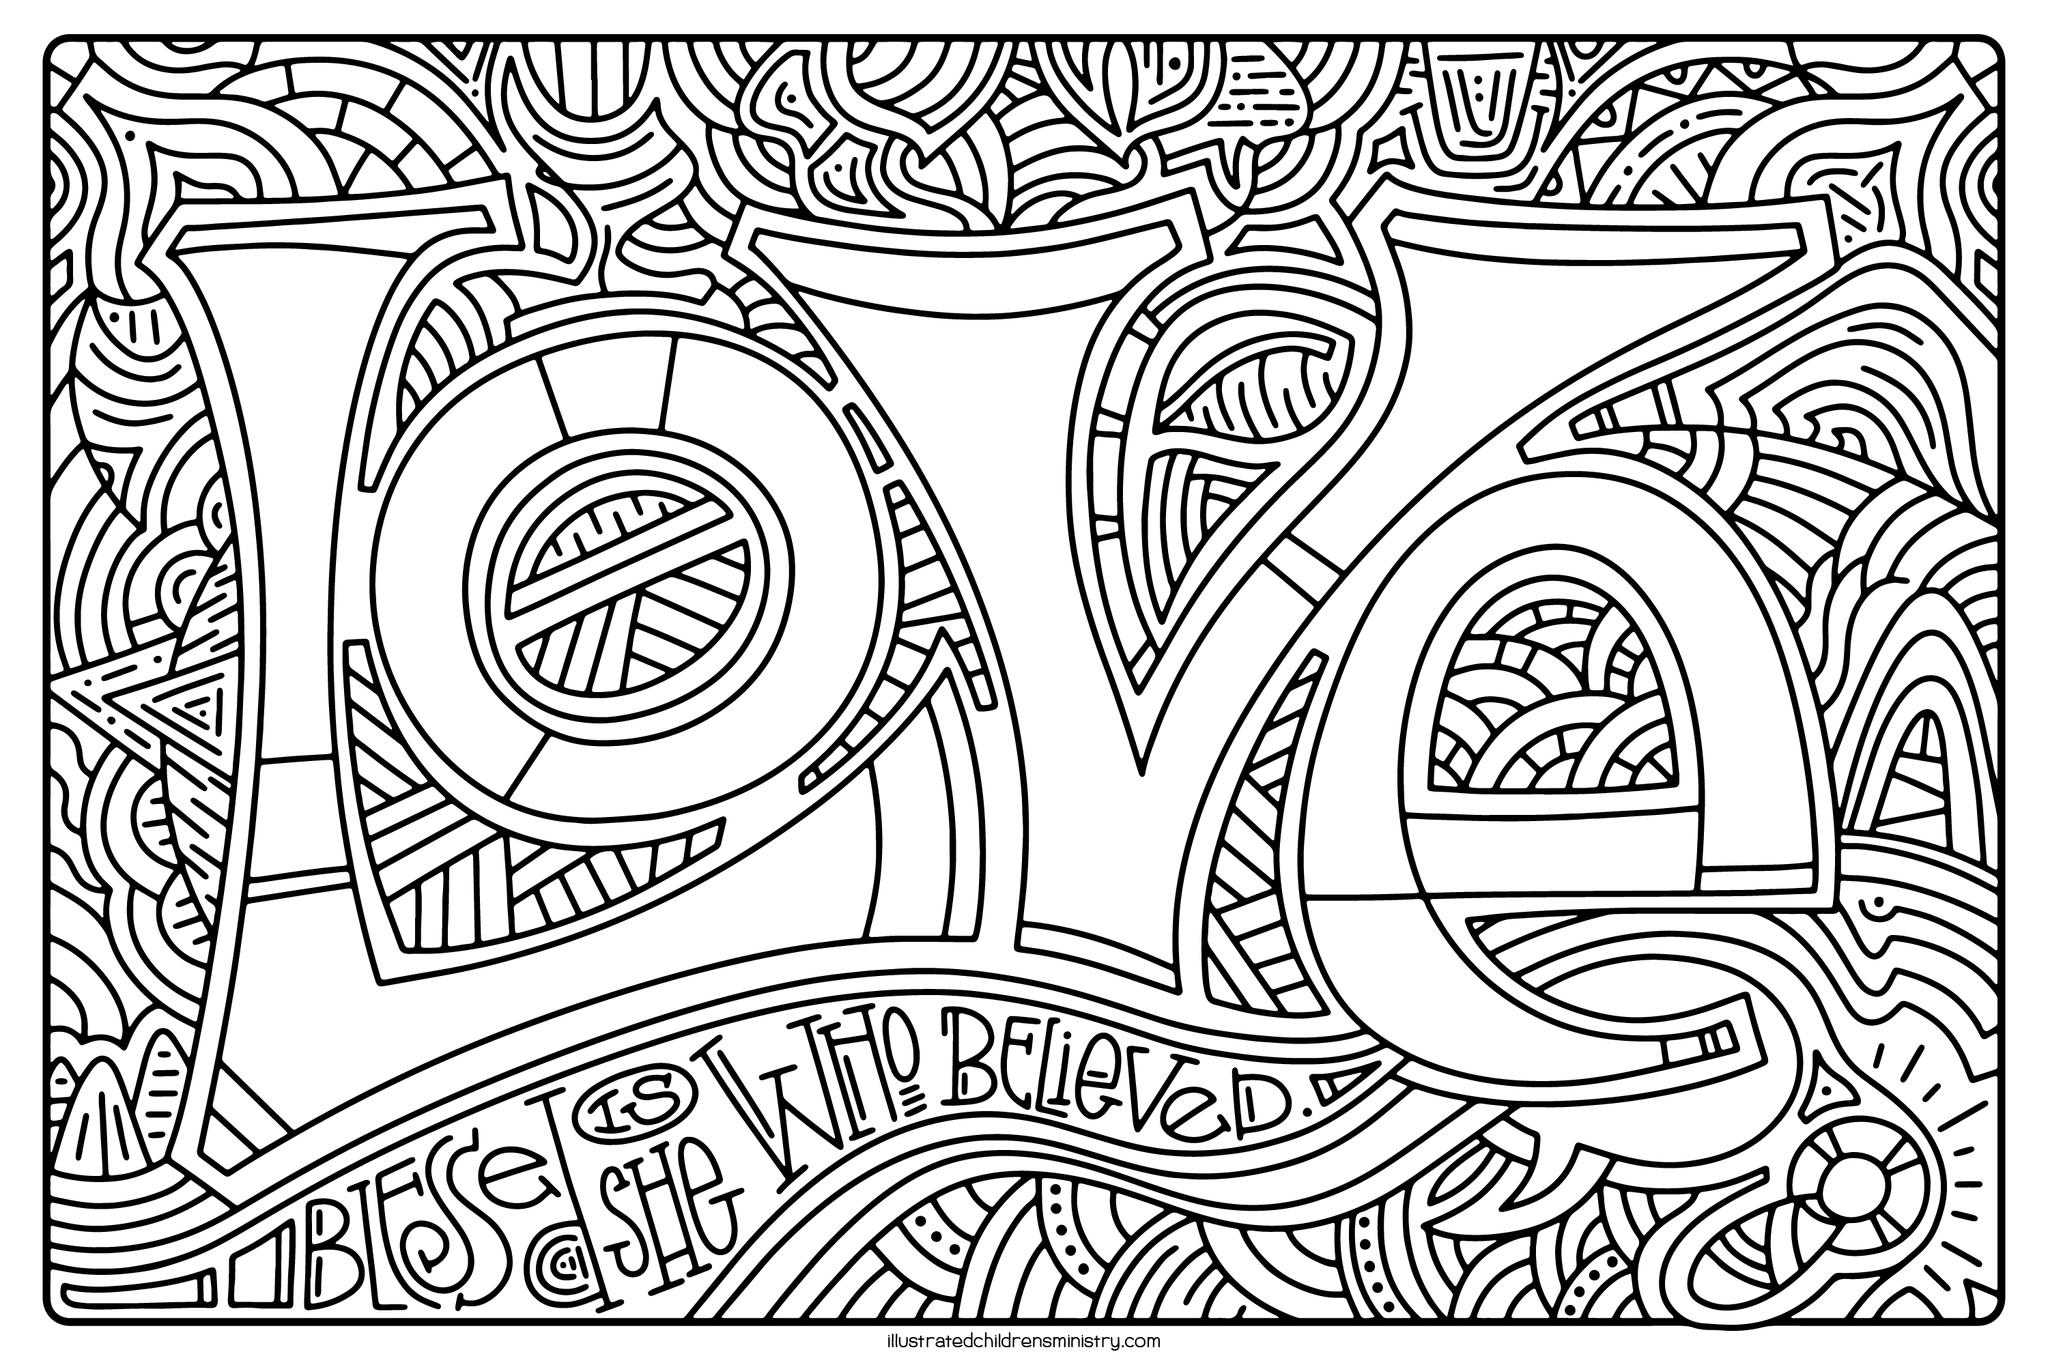 Mary's Song Coloring Page - Love